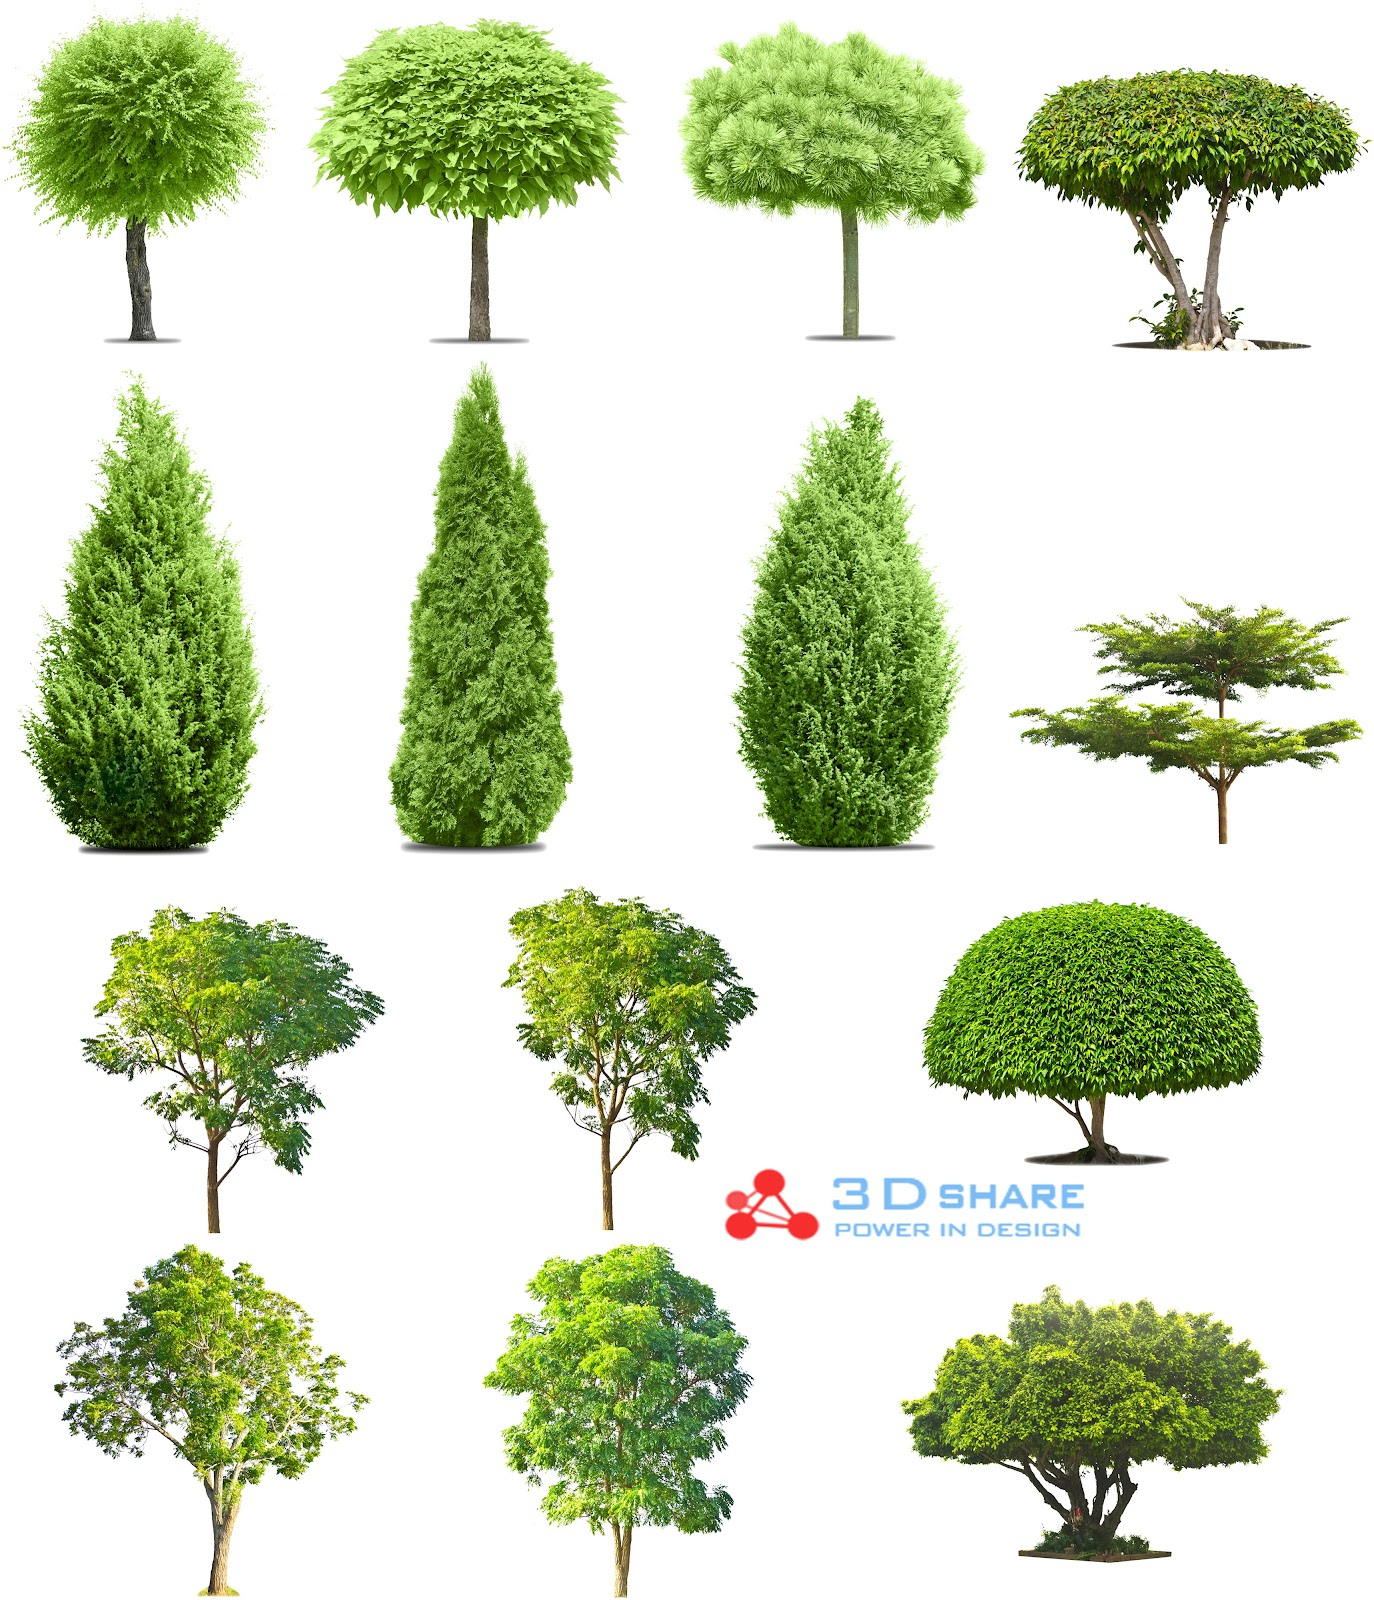 [photoshop][tree]